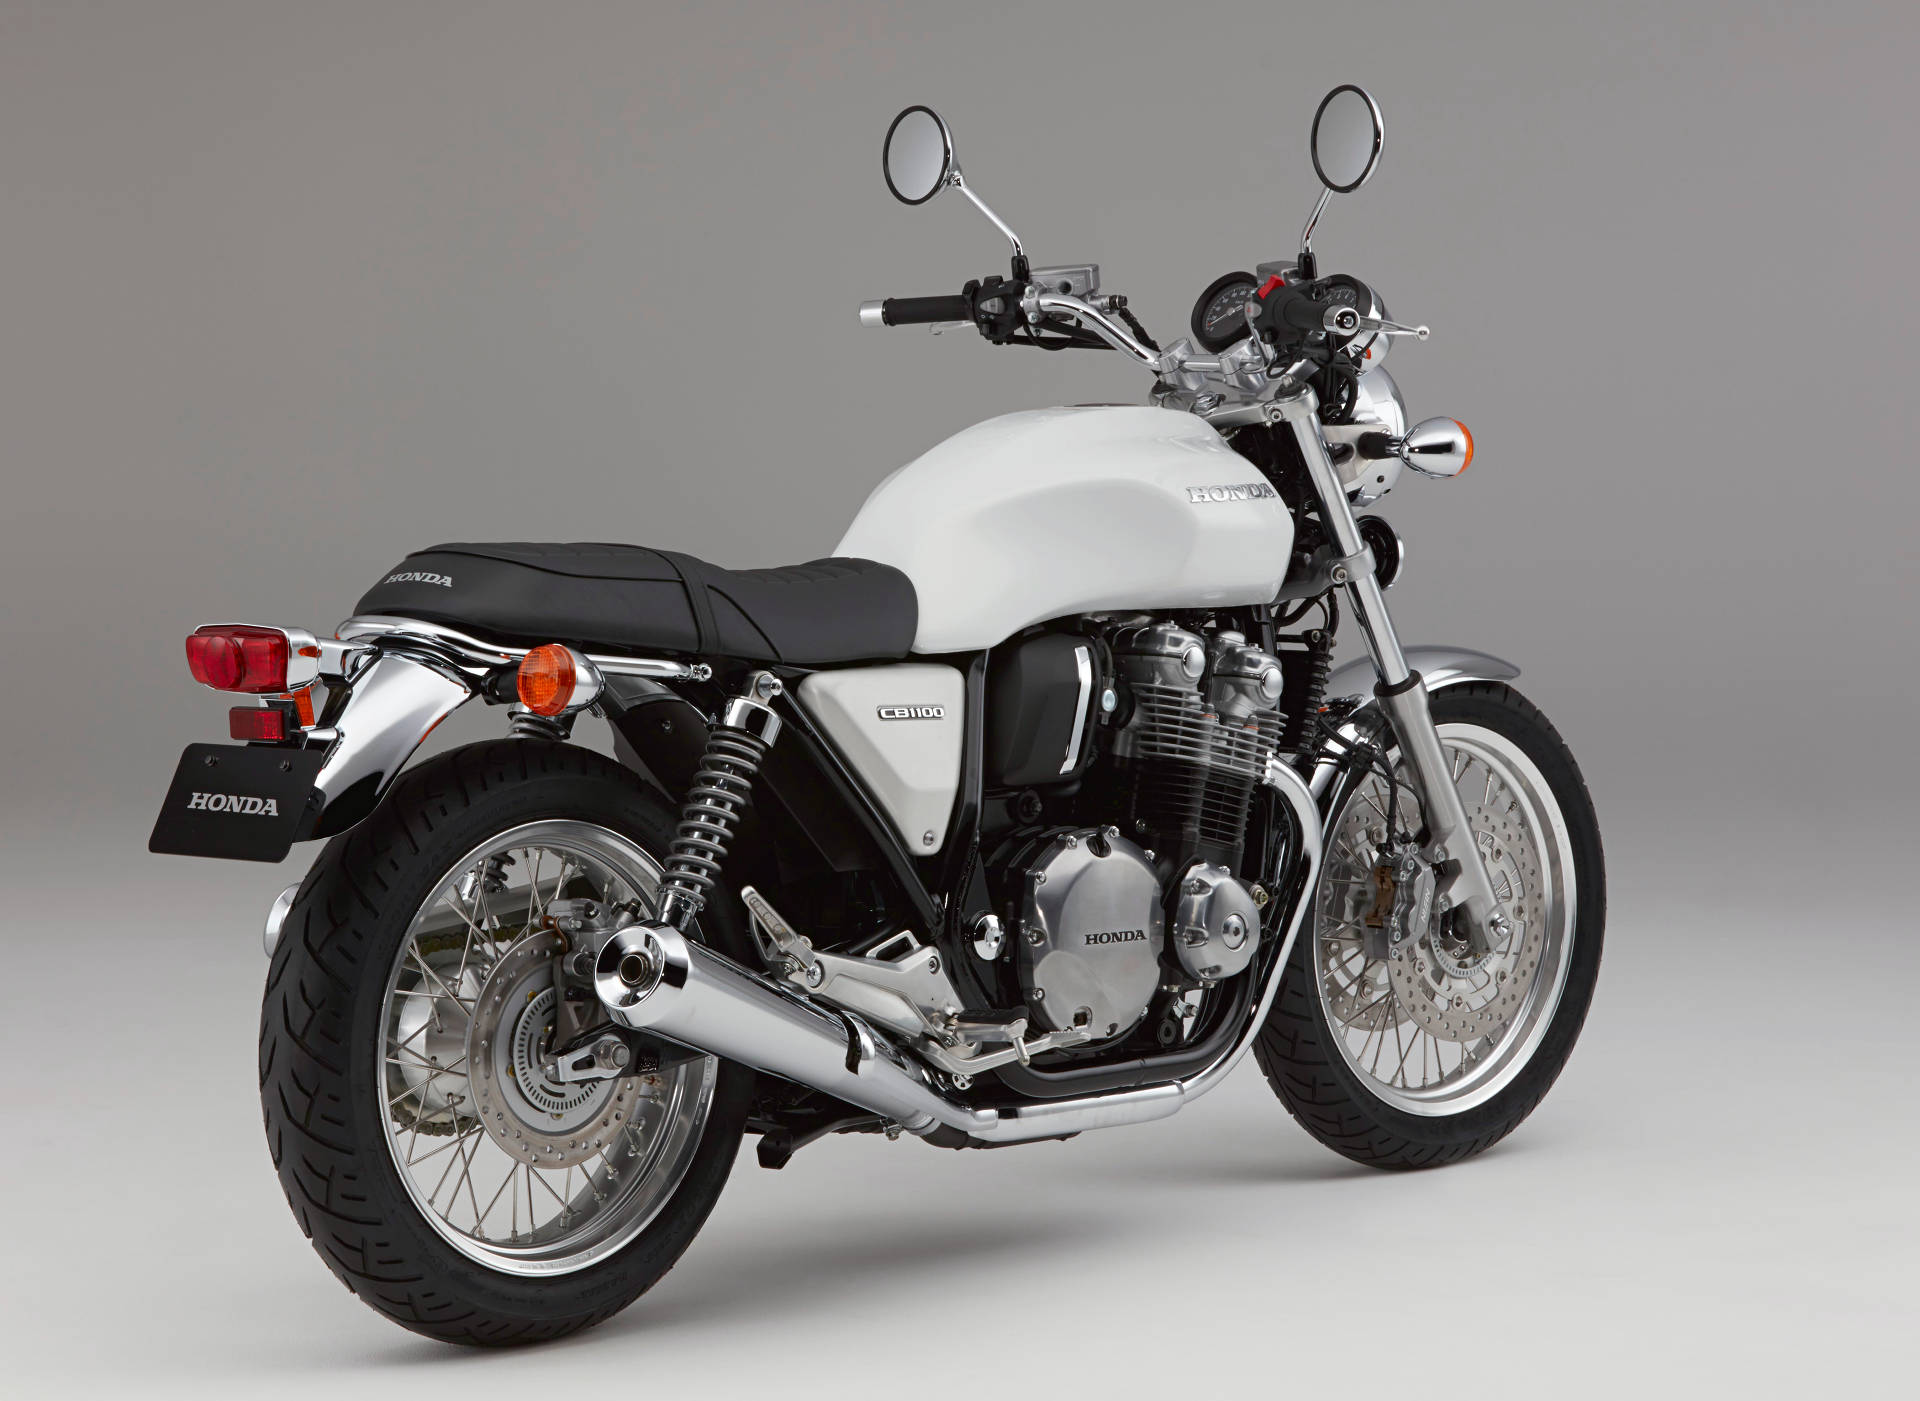 Honda Updates CB1100 Range Includes Sportier RS Model